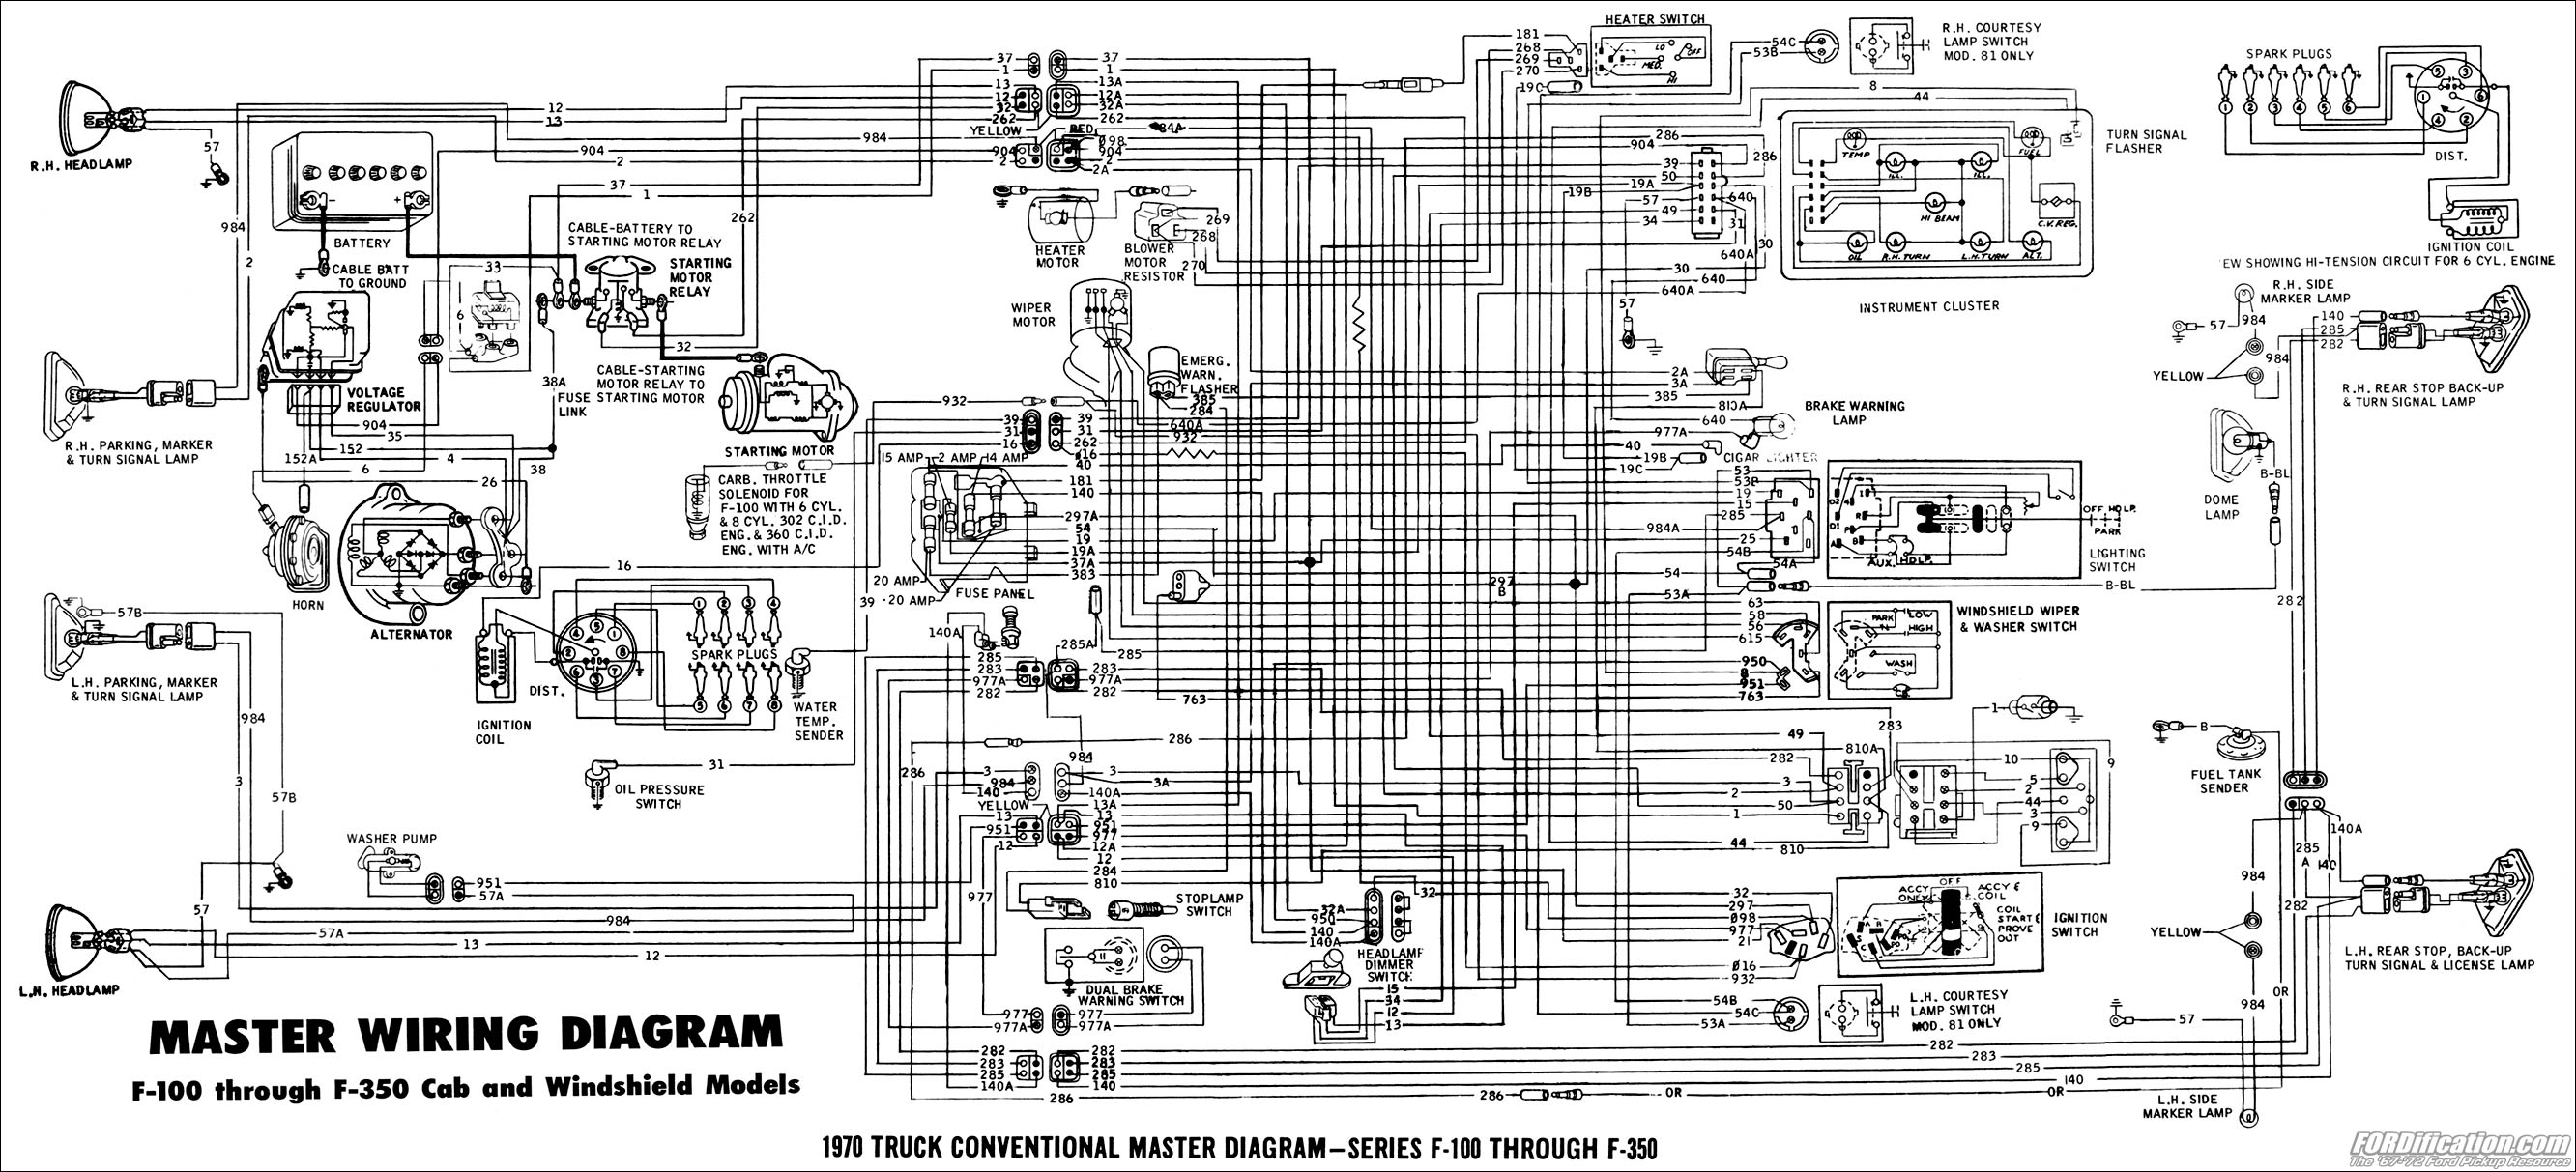 1988 Ford F 250 Wiring Diagram Another Blog About Trailer 02 Escape 1989 F250 Experts Of U2022 Rh Evilcloud Co Uk